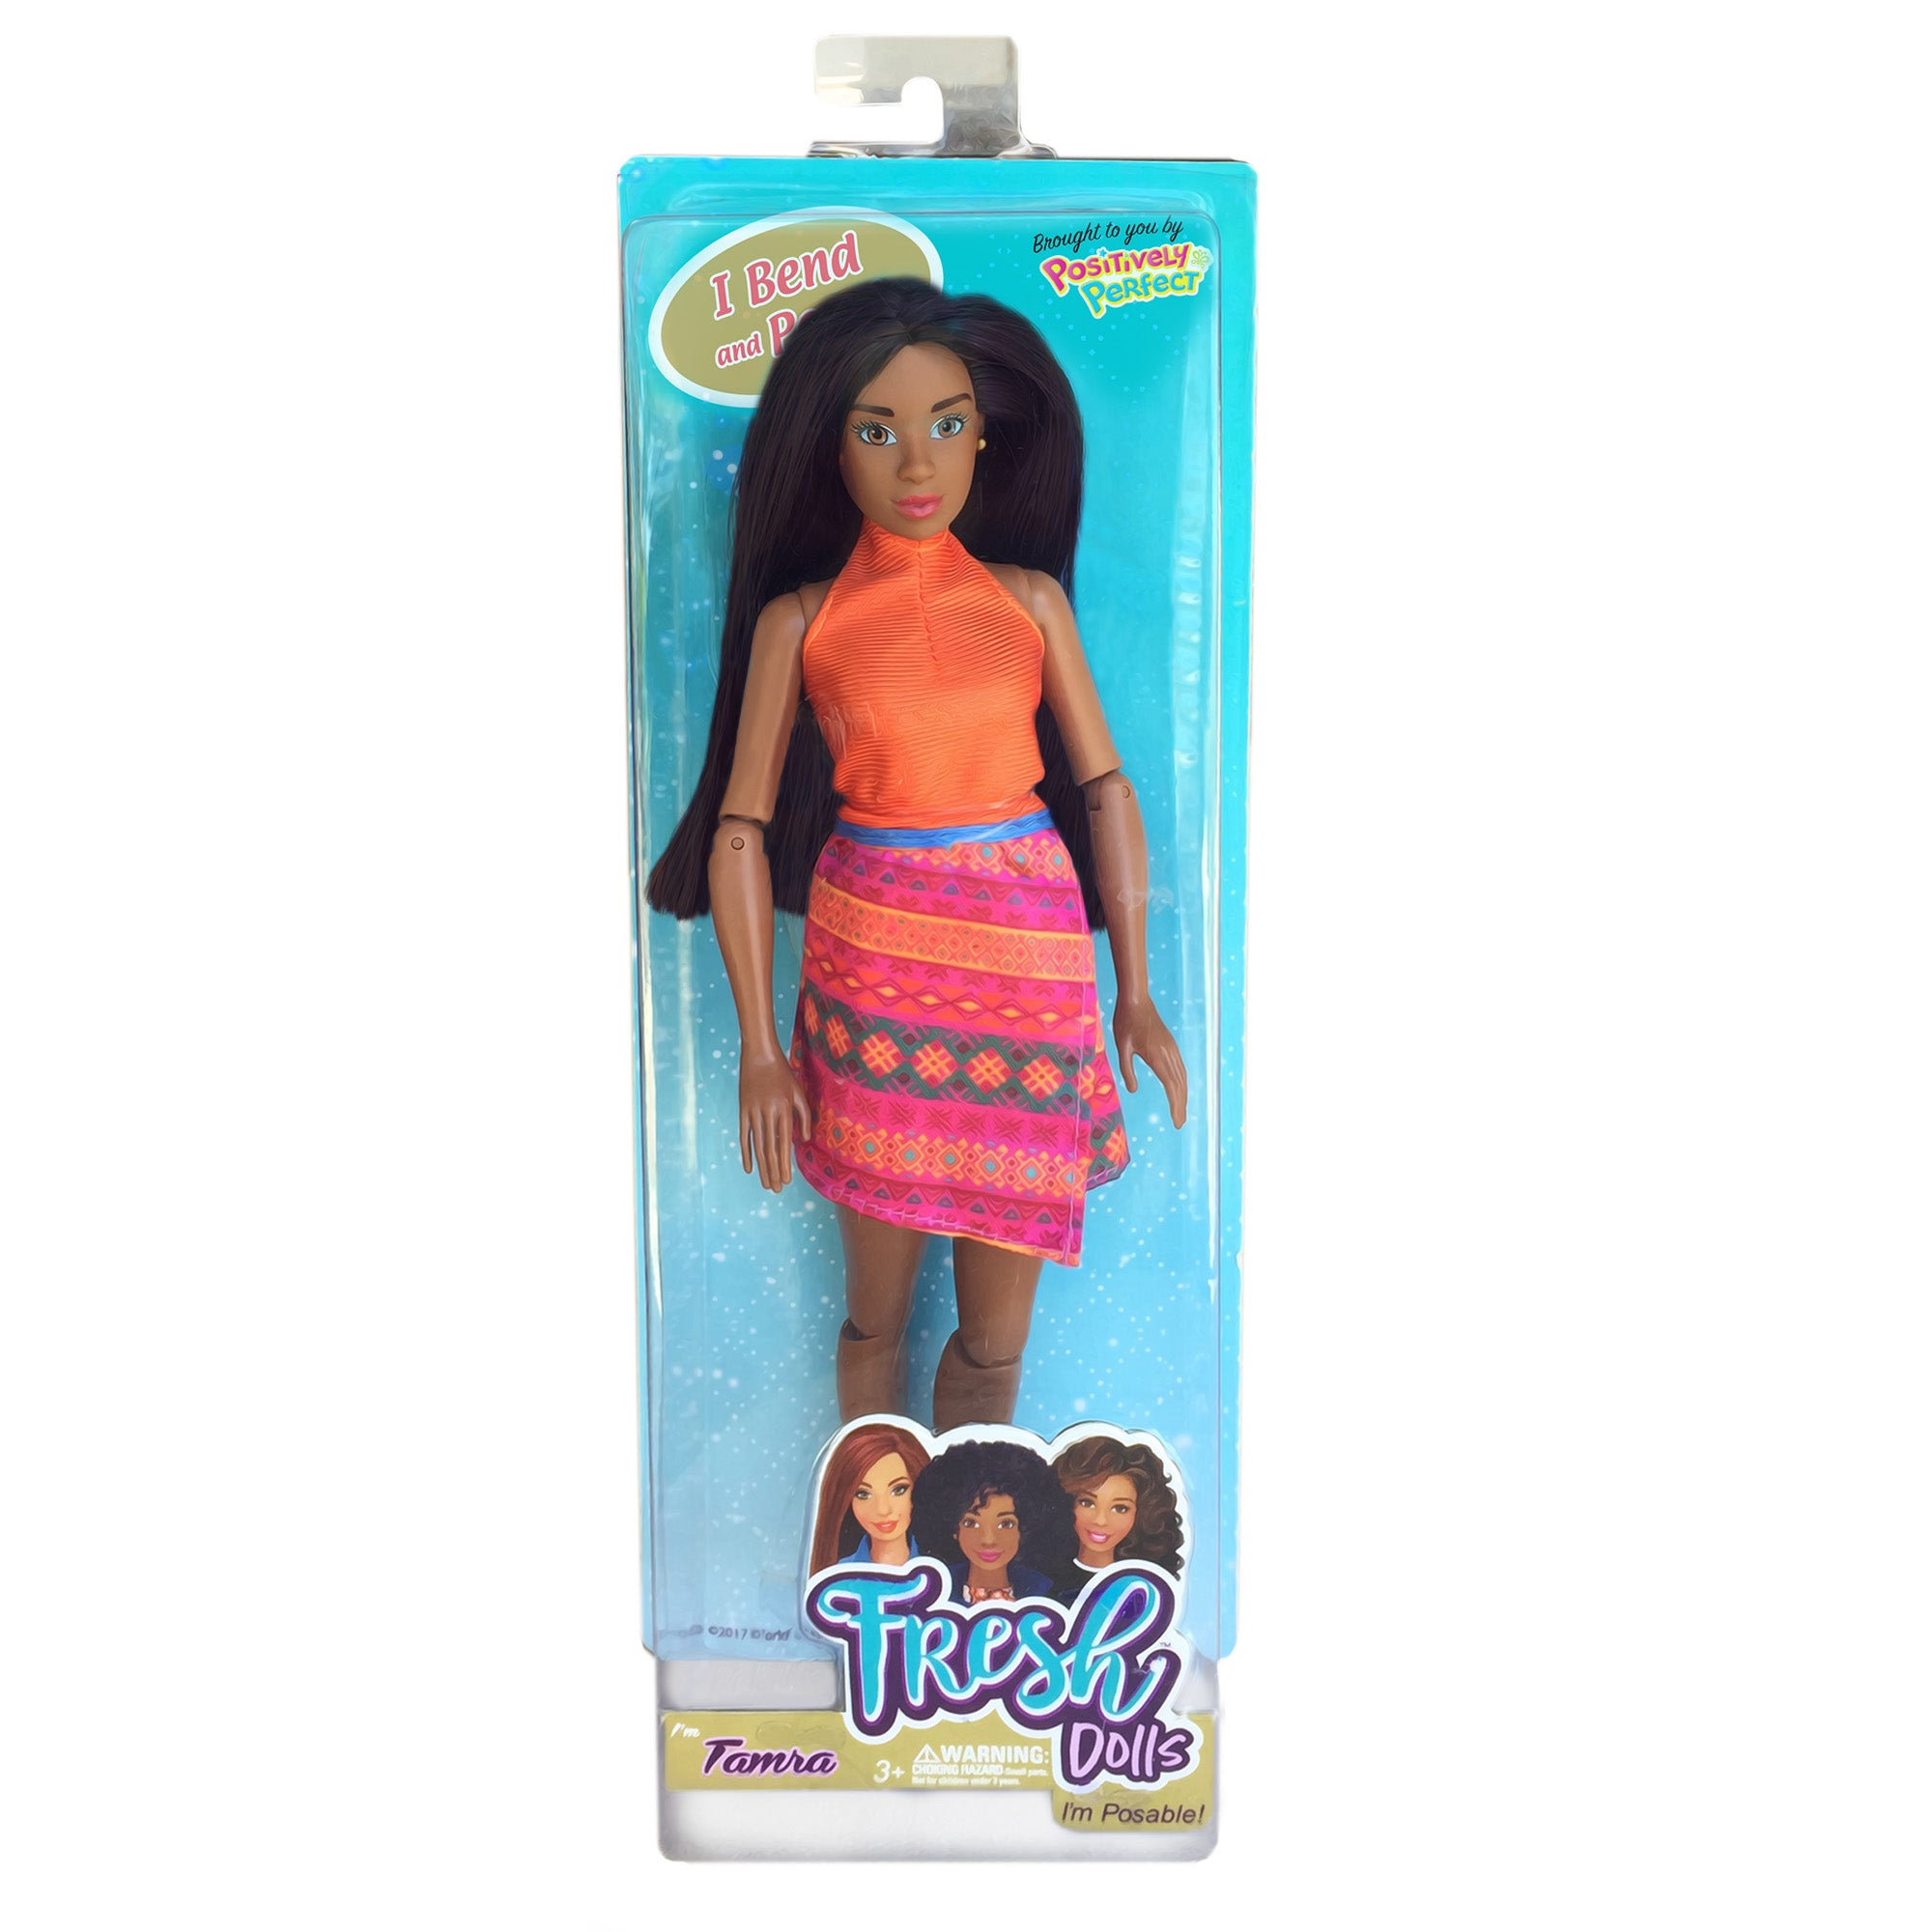 fashion doll with orange top and patterned skirt boxed